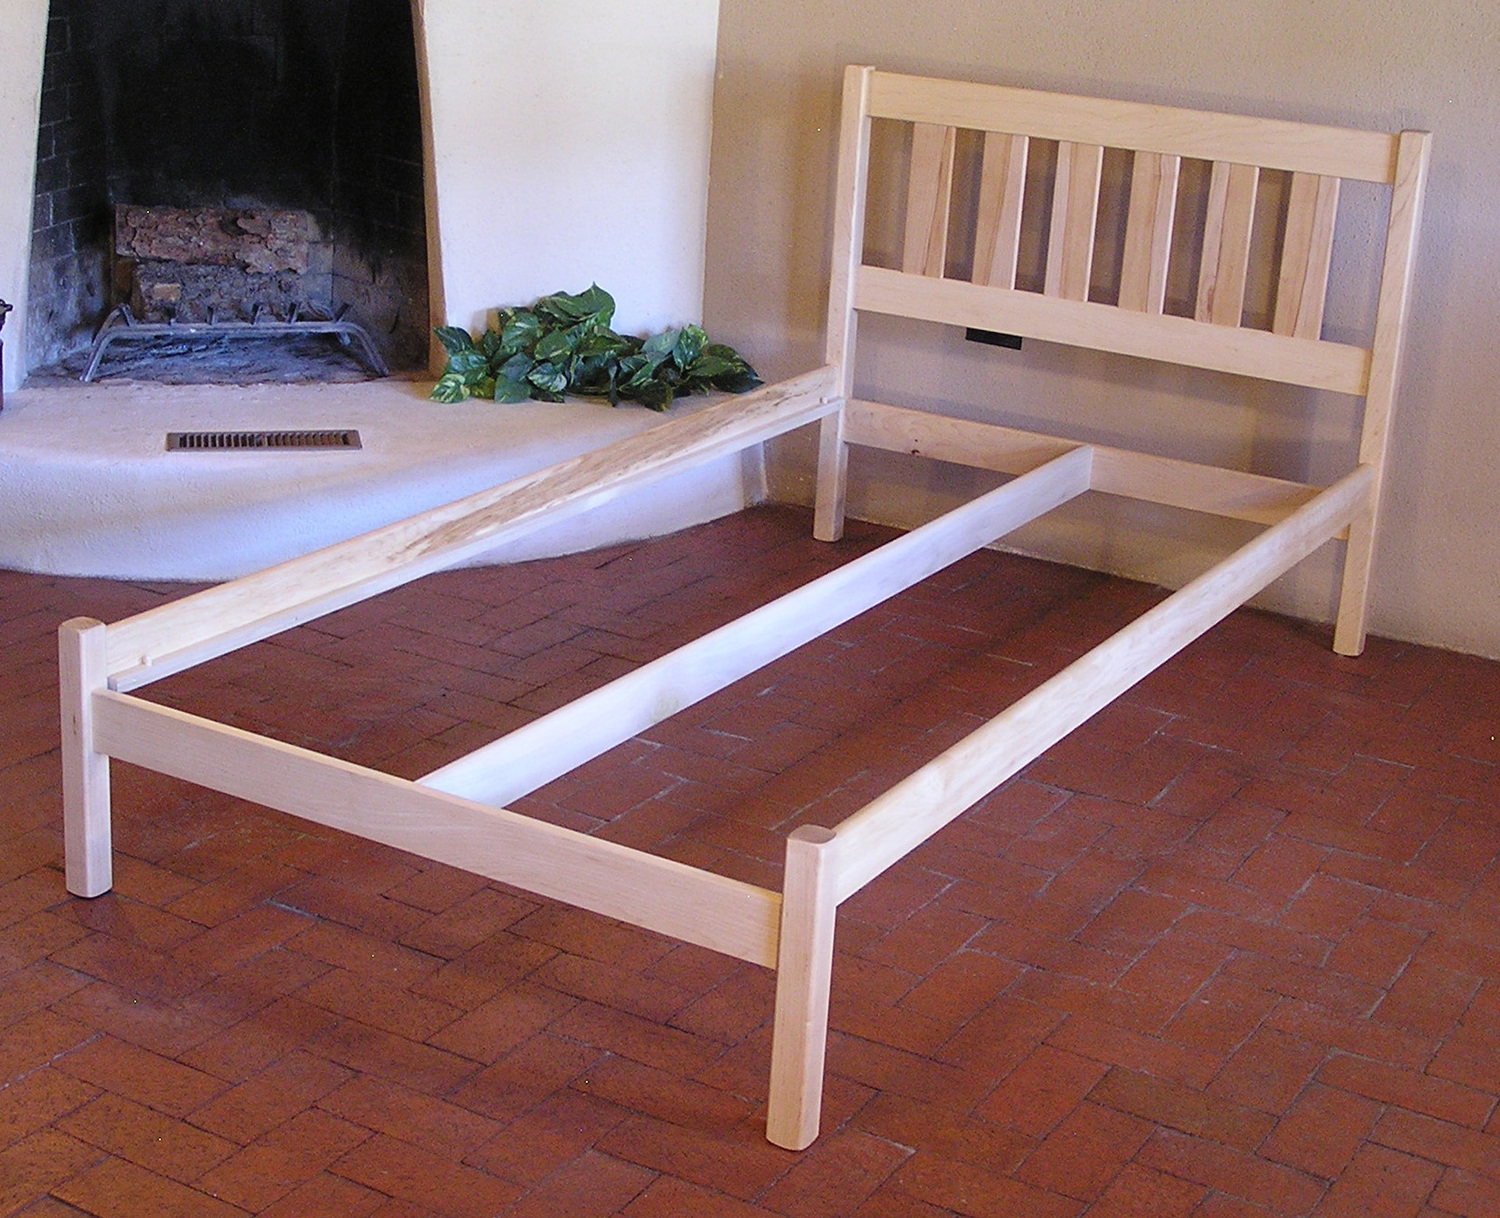 nomad bed assembly — dave cady's nomad furniture